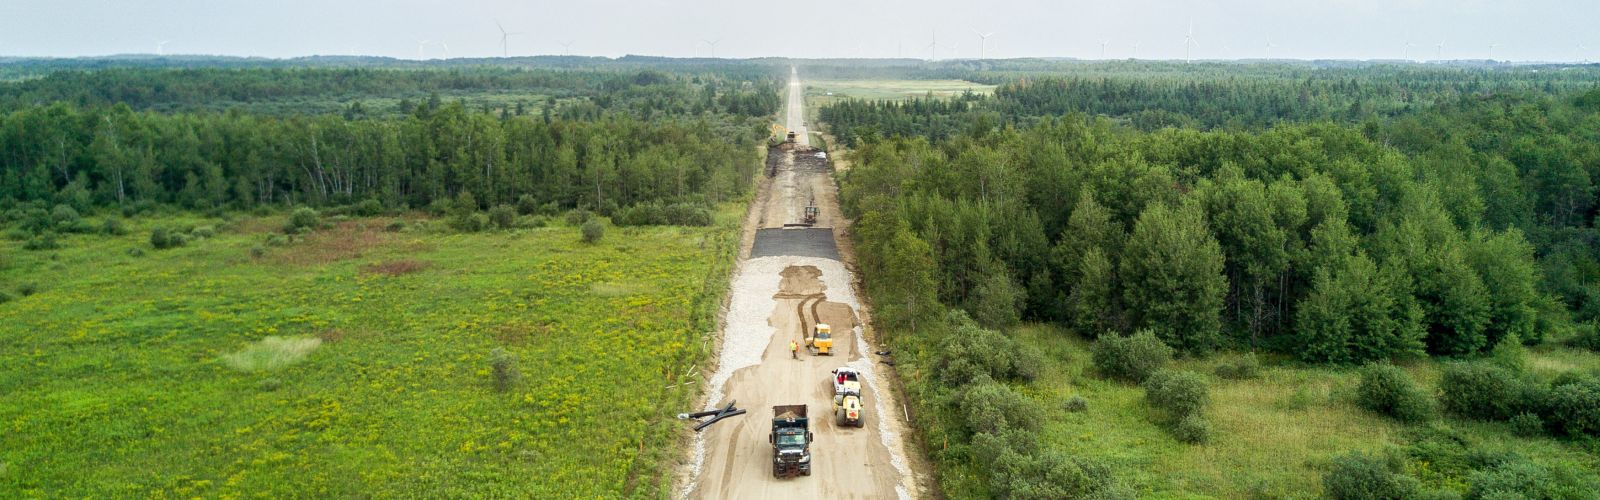 aerial view of road construction